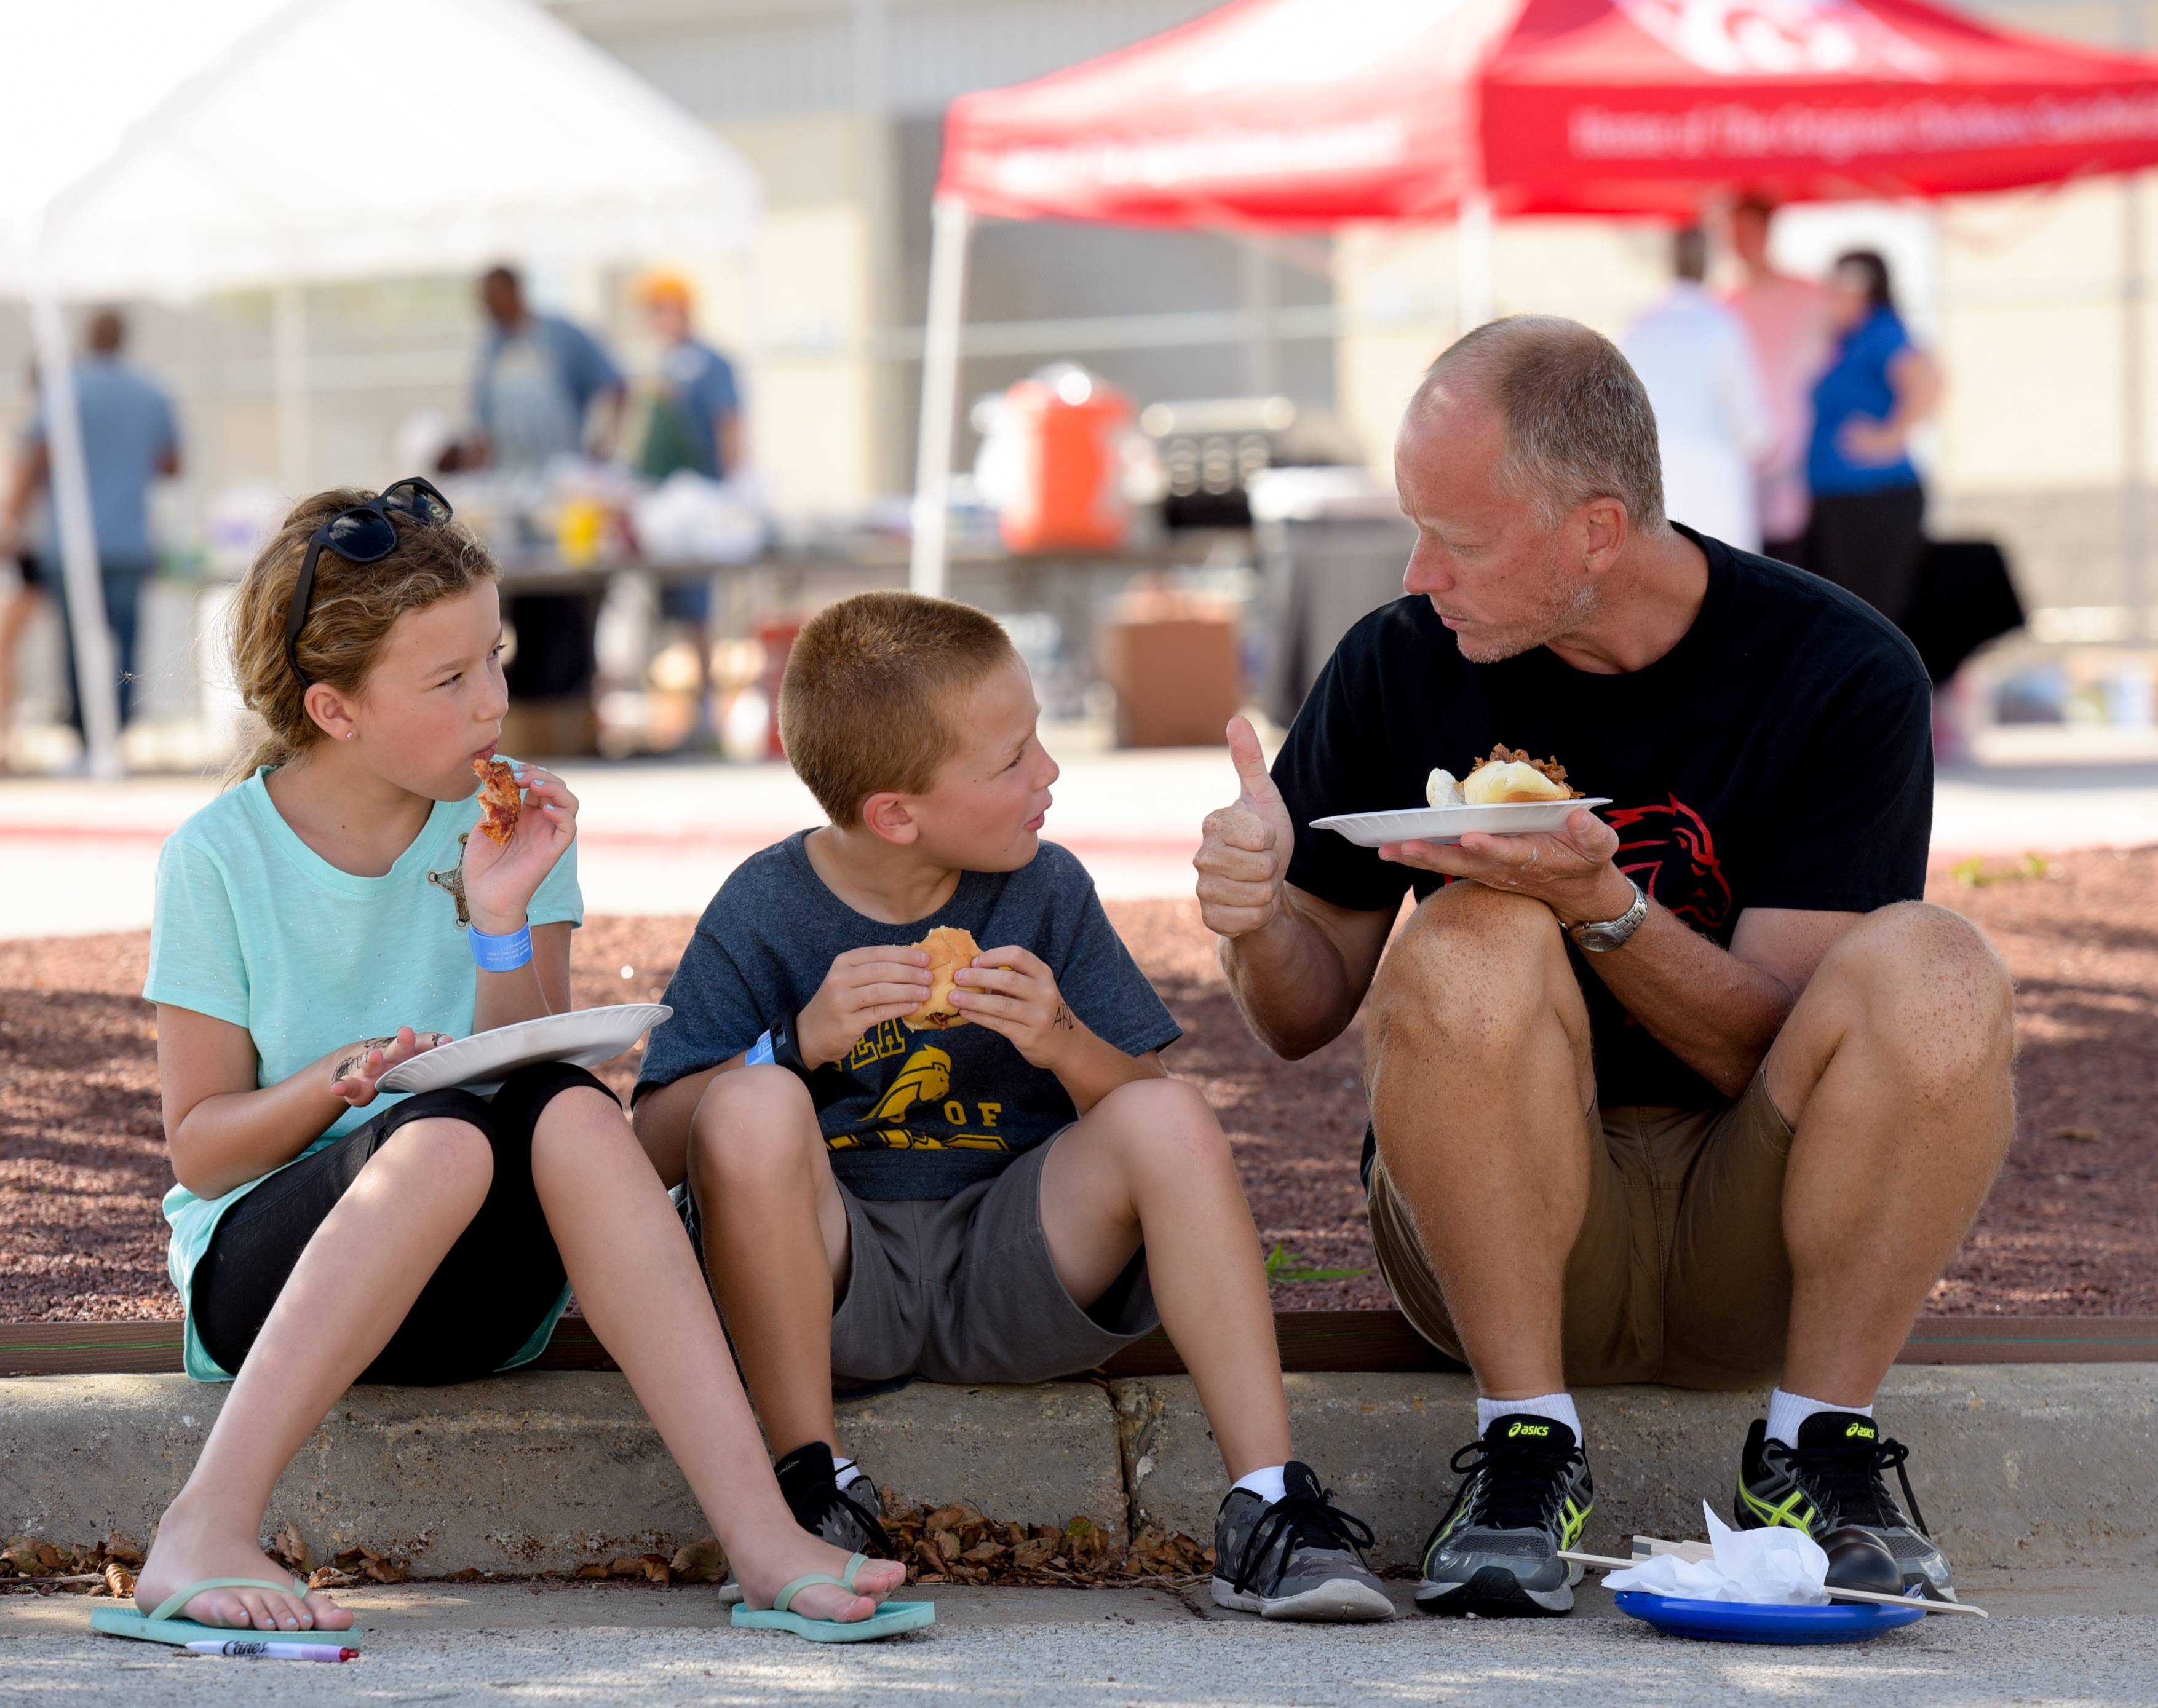 Sasha, 10, Ari, 8, and Don Pankuch of Oswego enjoy food during the Unity Partnership backyard party Saturday at Metea Valley High School.